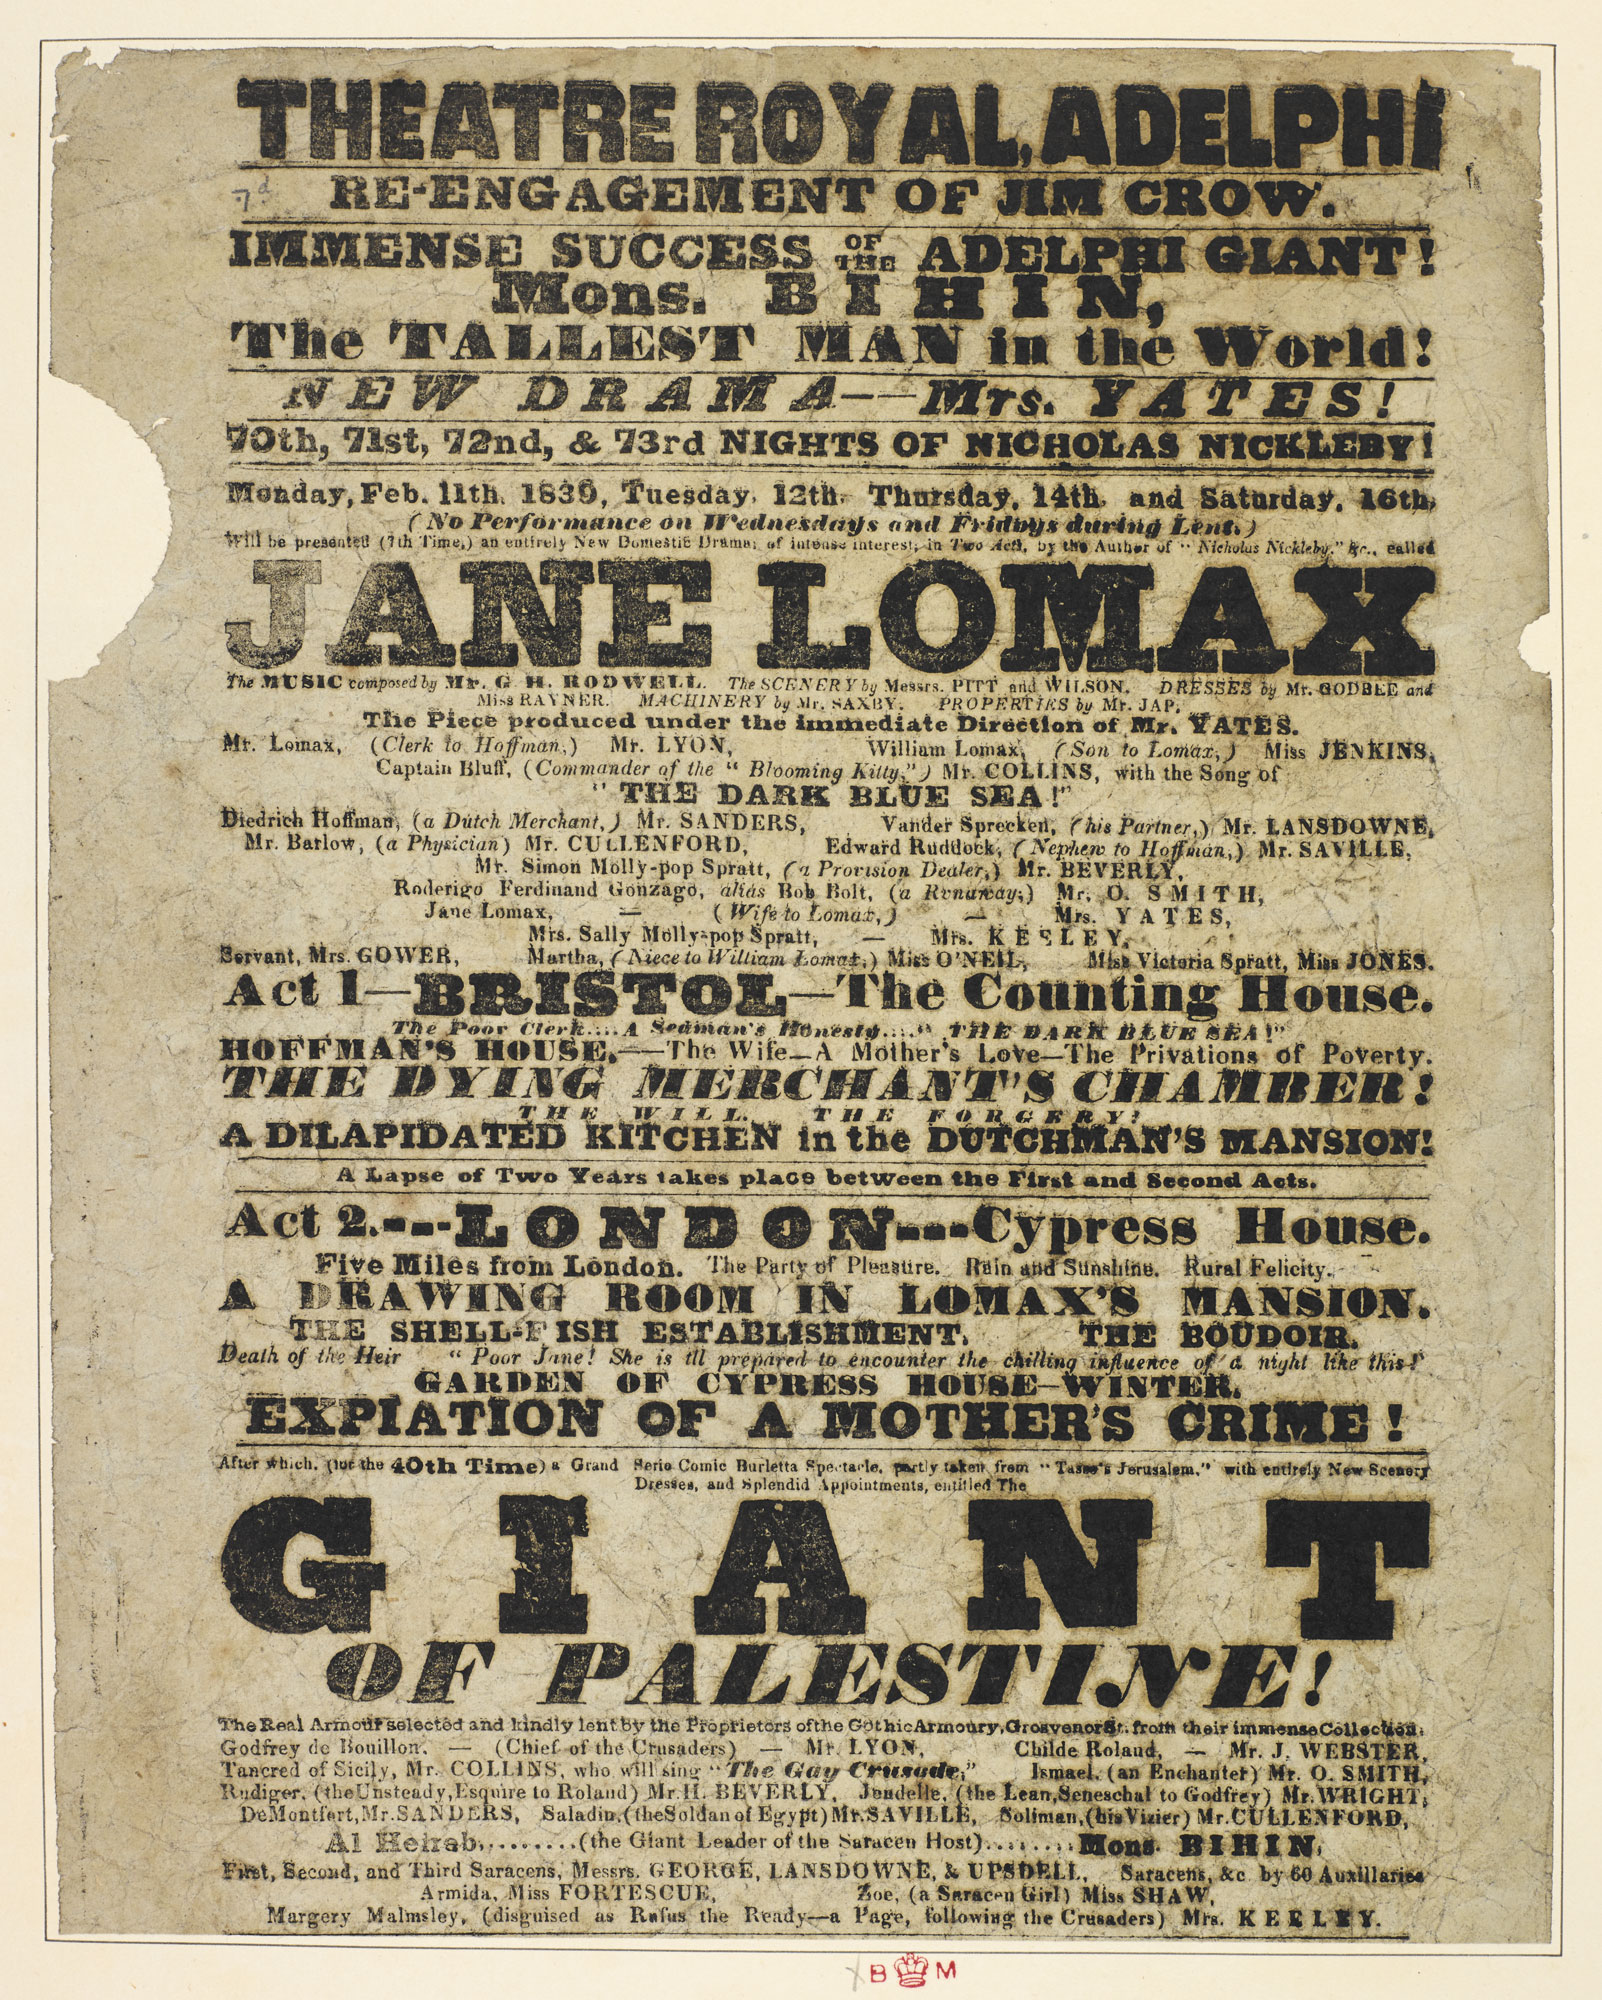 Playbill for The Theatre Royal, Adelphi advertising 'Nicholas Nickleby', 1839 [page: 128]